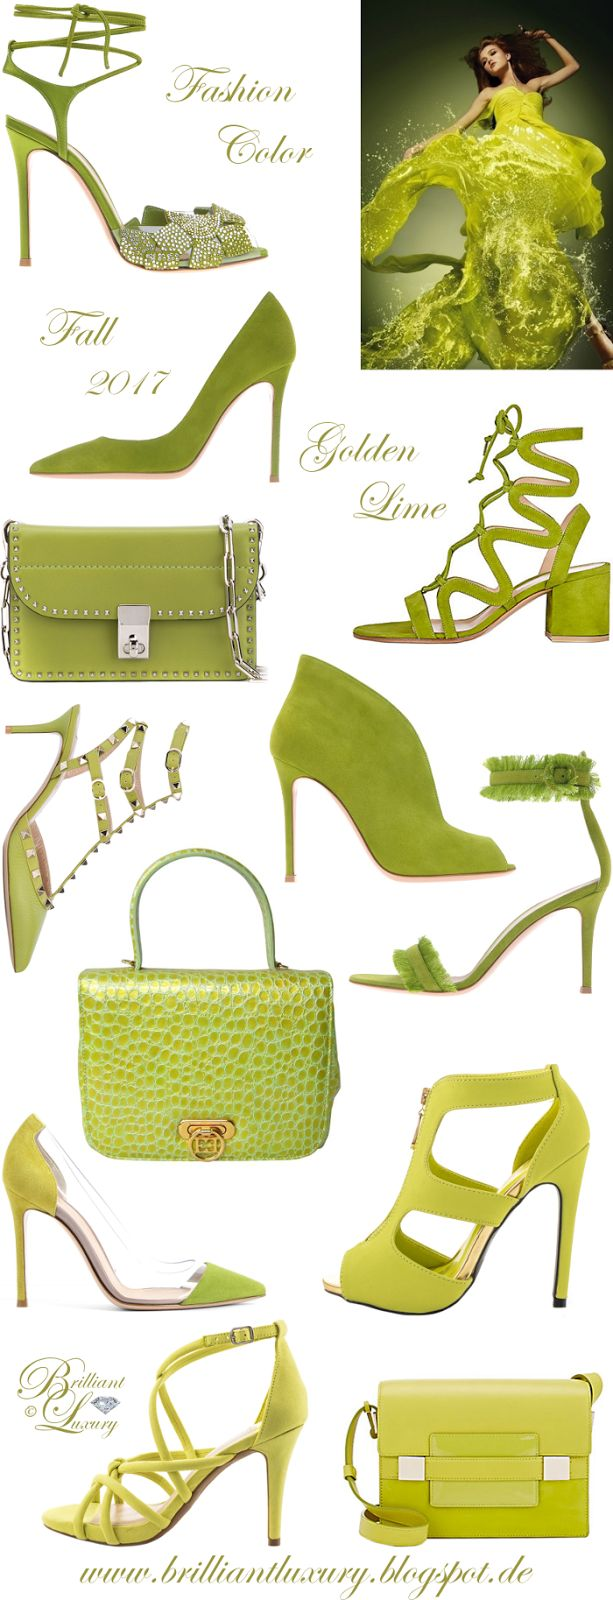 Brilliant Luxury by Emmy DE ♦ Fashion Color Fall 2017 ~ golden lime